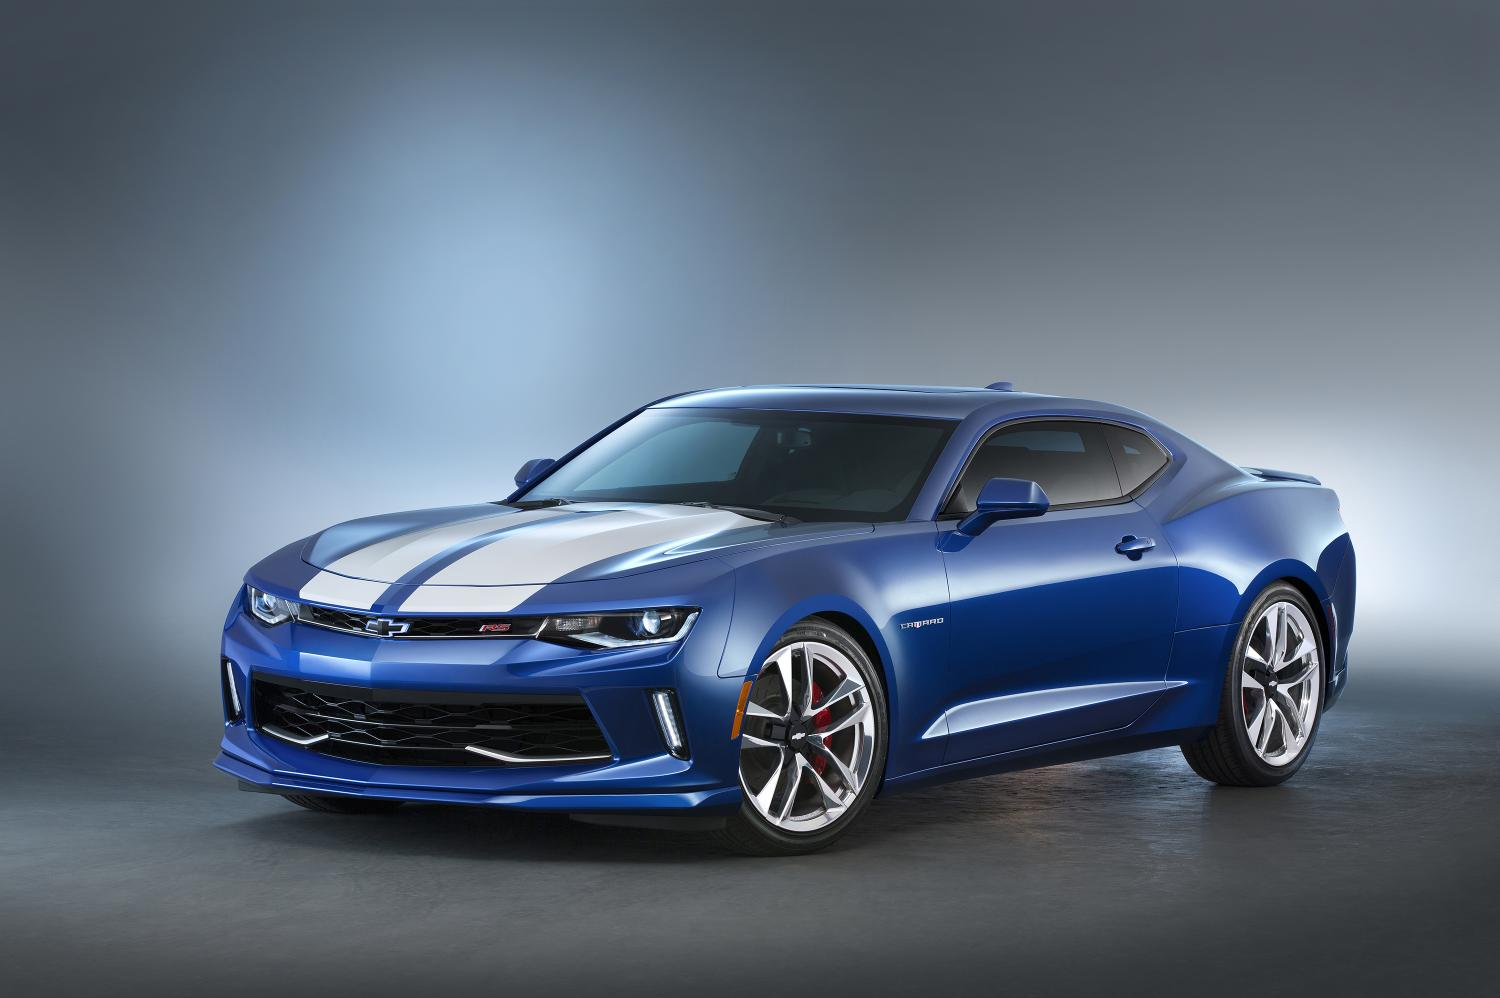 Gumball Cars Wallpapers 2016 Chevy Camaro Gets 4 Custom Concepts For 2015 Sema